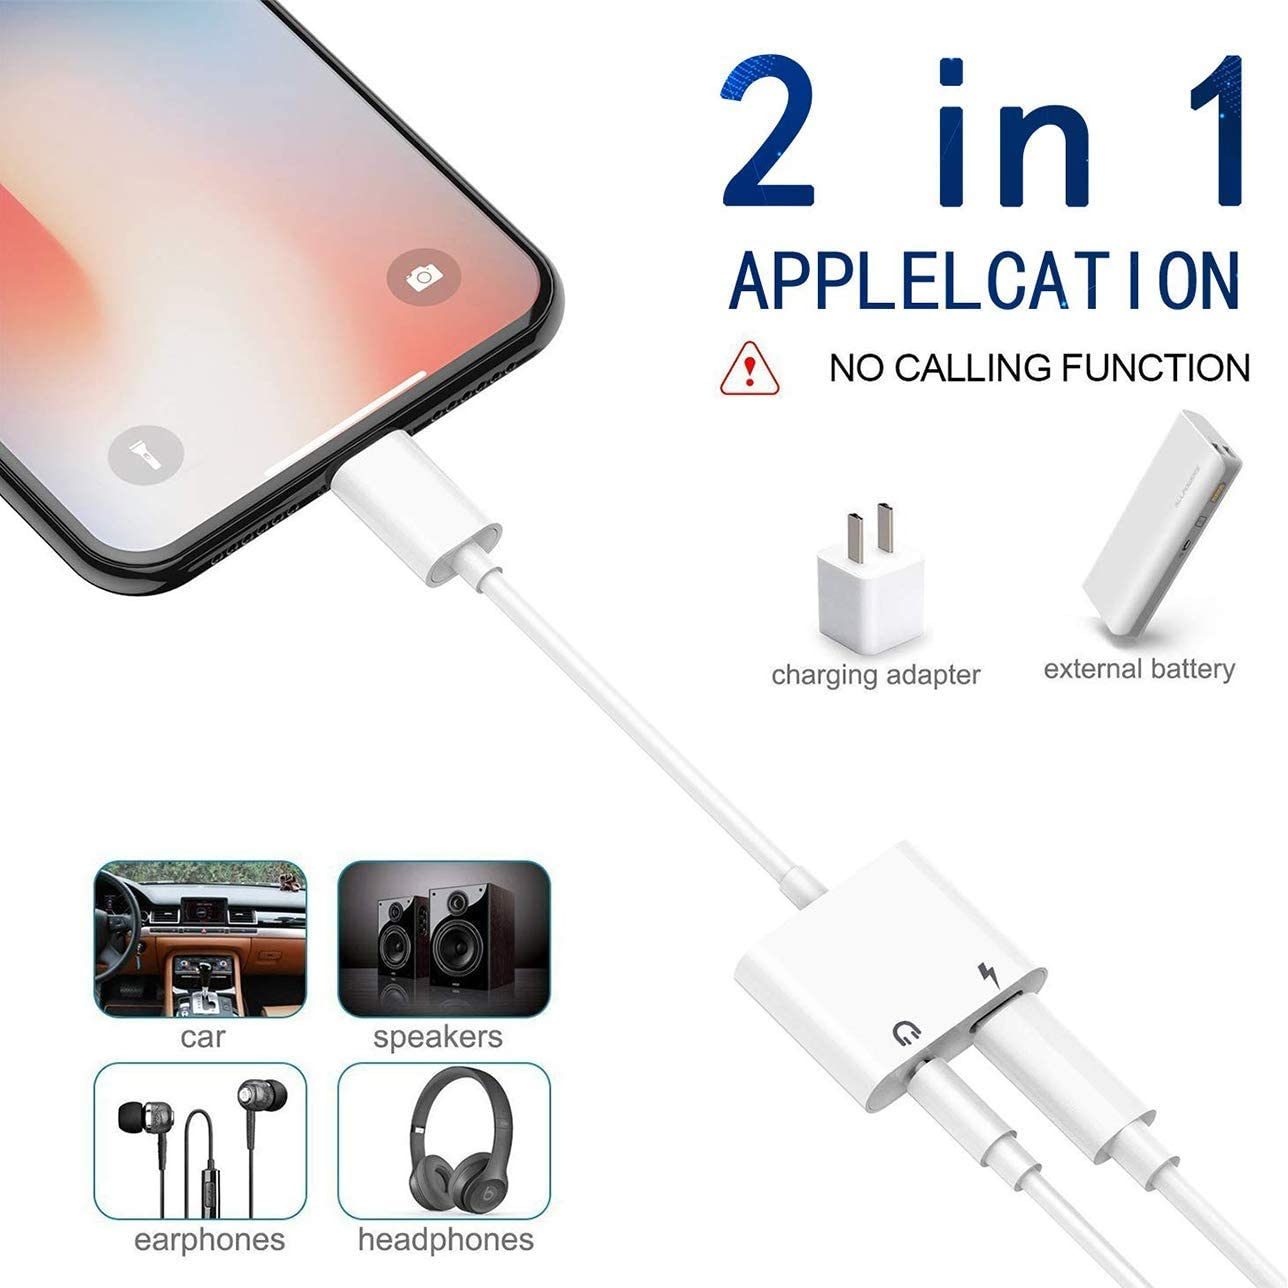 Headphone Adapter for iPhone Charger Jack AUX Audio 3.5 mm Jack Adapter for iPhone Adapter Compatible with iPhone 7//7 Plus//8//8 Plus//11//X//XS//MAX Dongle Accessory Connector Compatible All iOS Systems